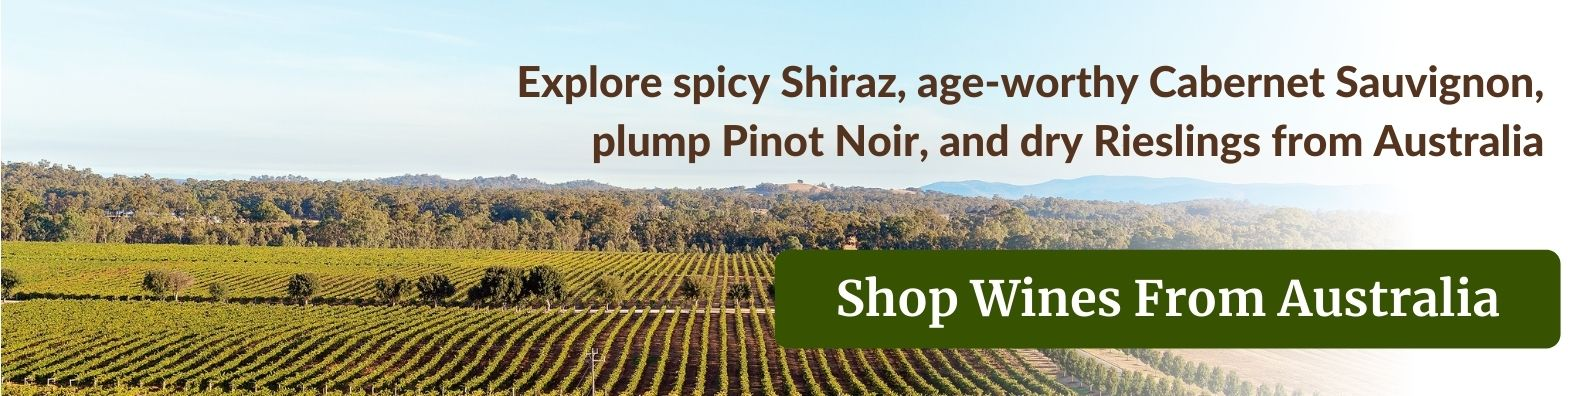 shop wines from australia in the philippines